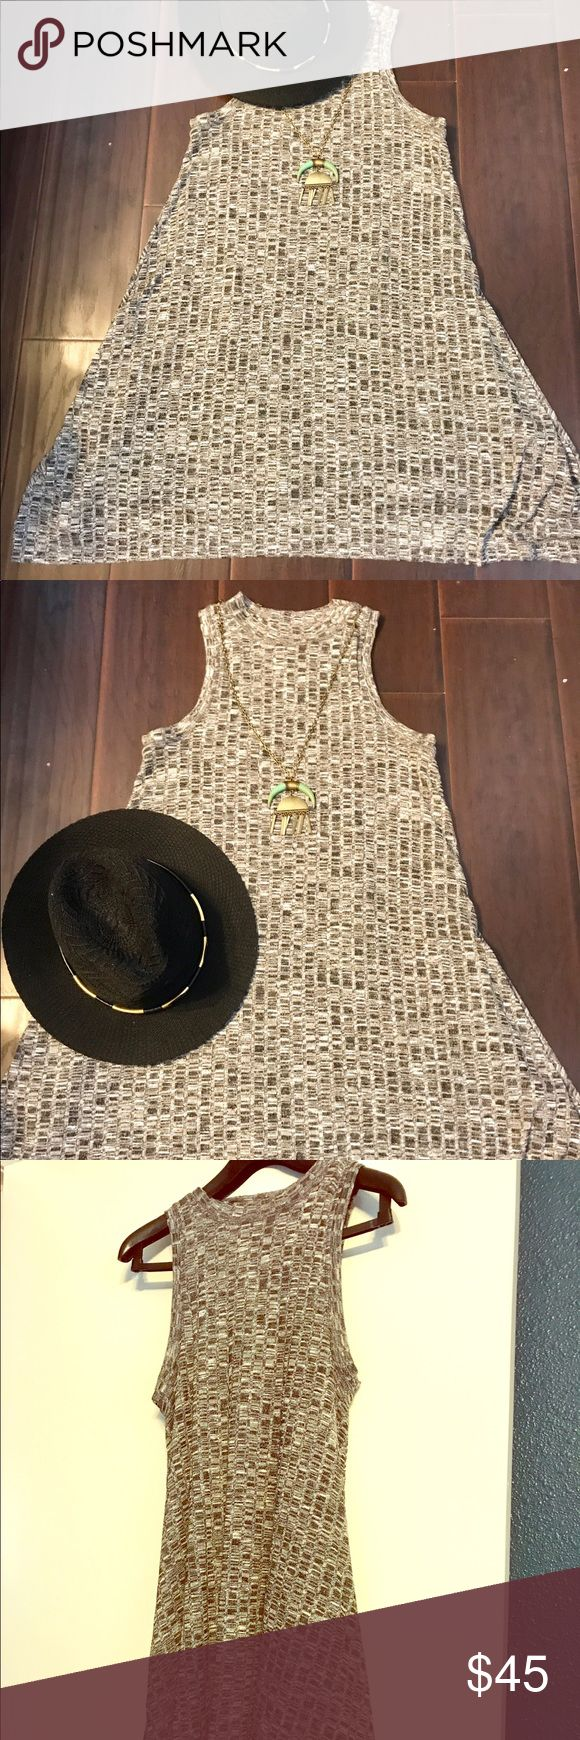 Maeve Anthropologie brand high neck tank dress Classic high neck flattering tank dress. Popular Anthropologie brand Maeve. Fully lined, poly and rayon blend fabric. In excellent condition. Anthropologie Dresses